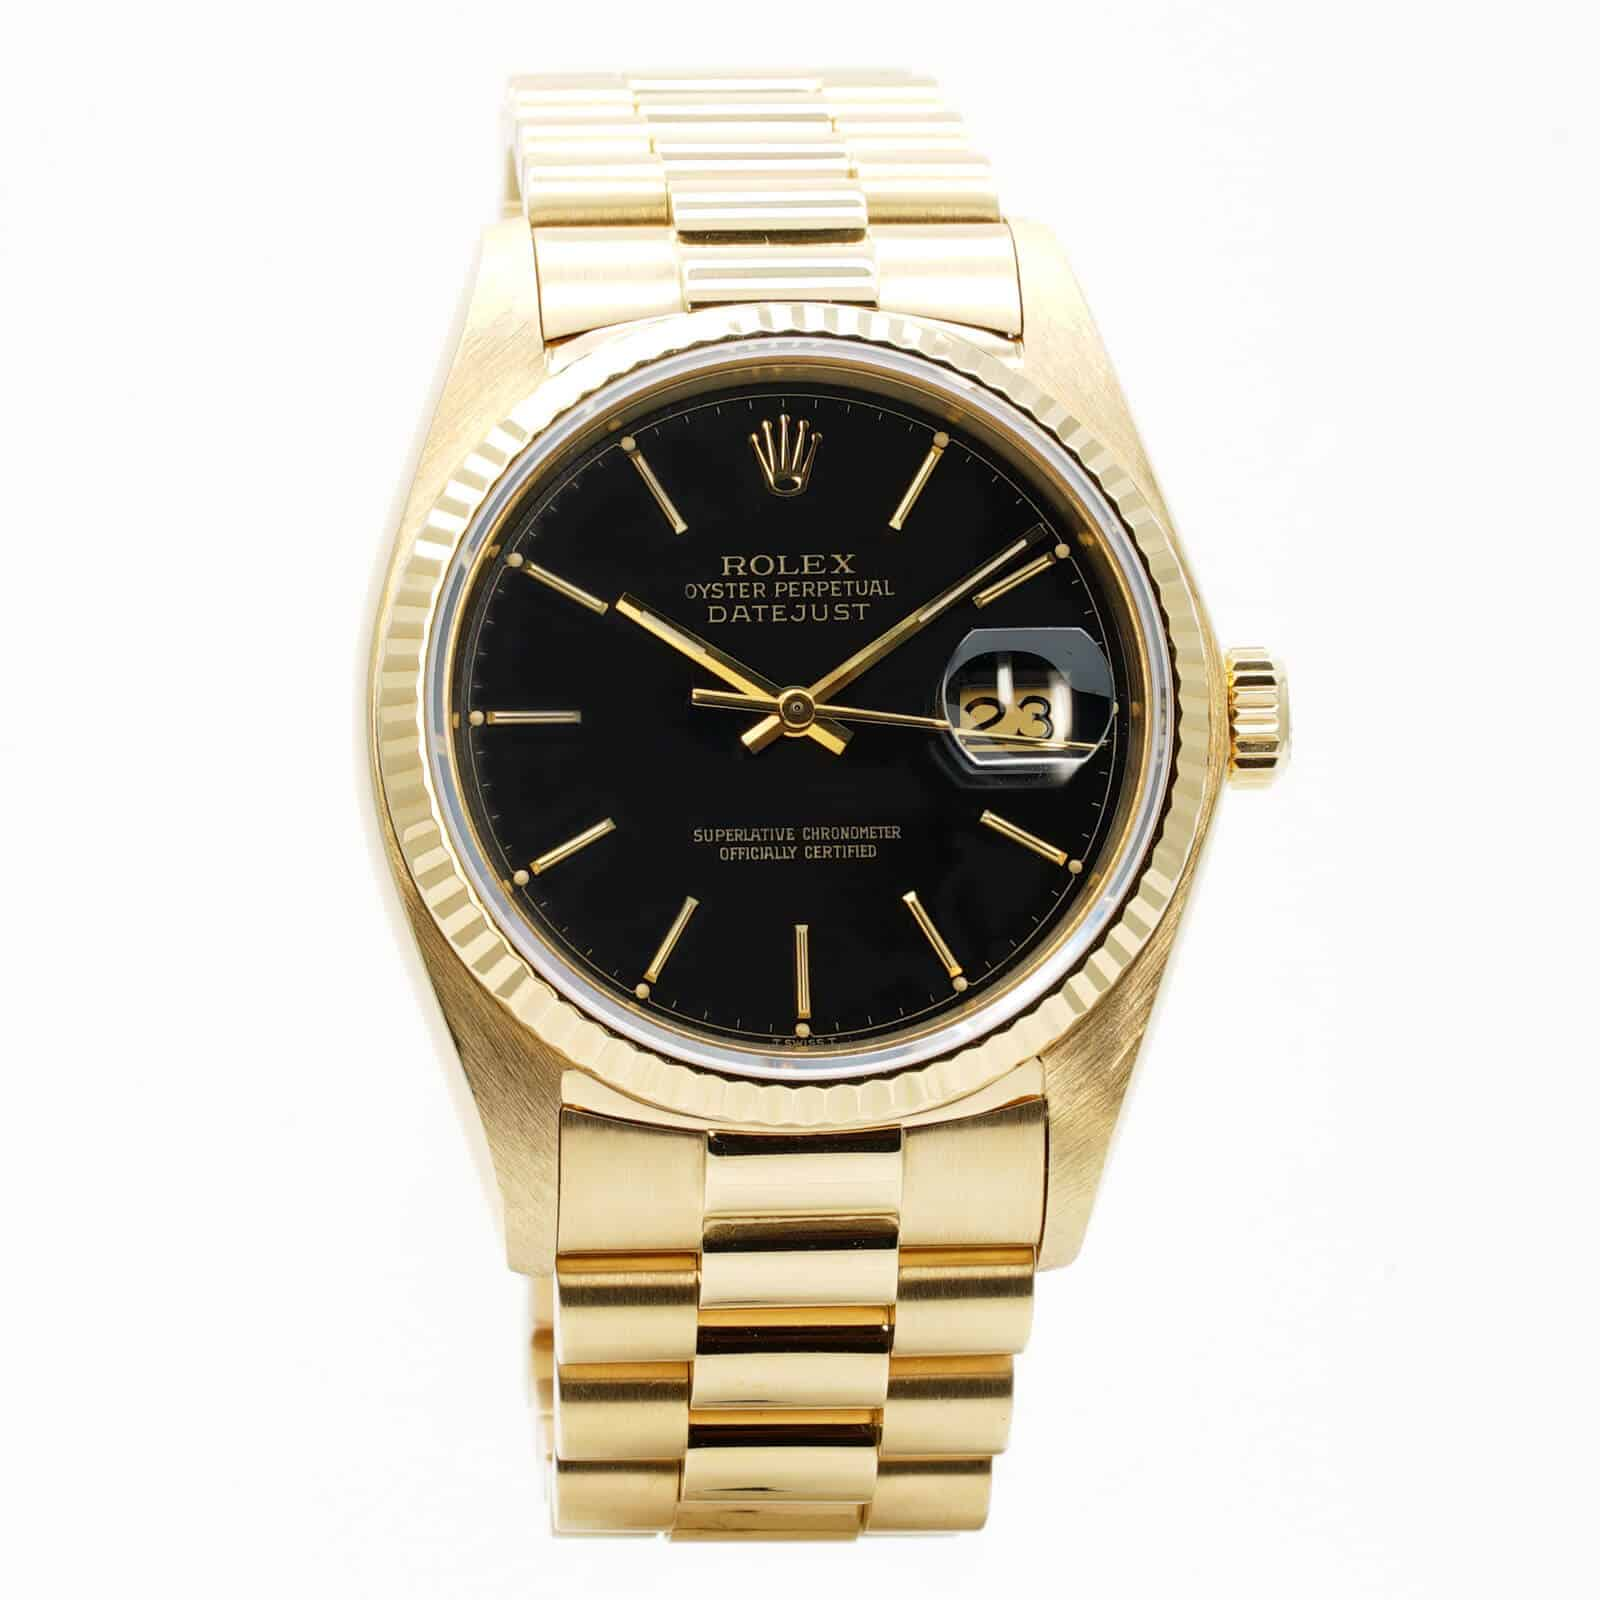 4cb7213cfb55e Oyster Perpetual Date Just 36. Montre-Rolex-Date-Just-36-occasion-Lionel- Meylan-